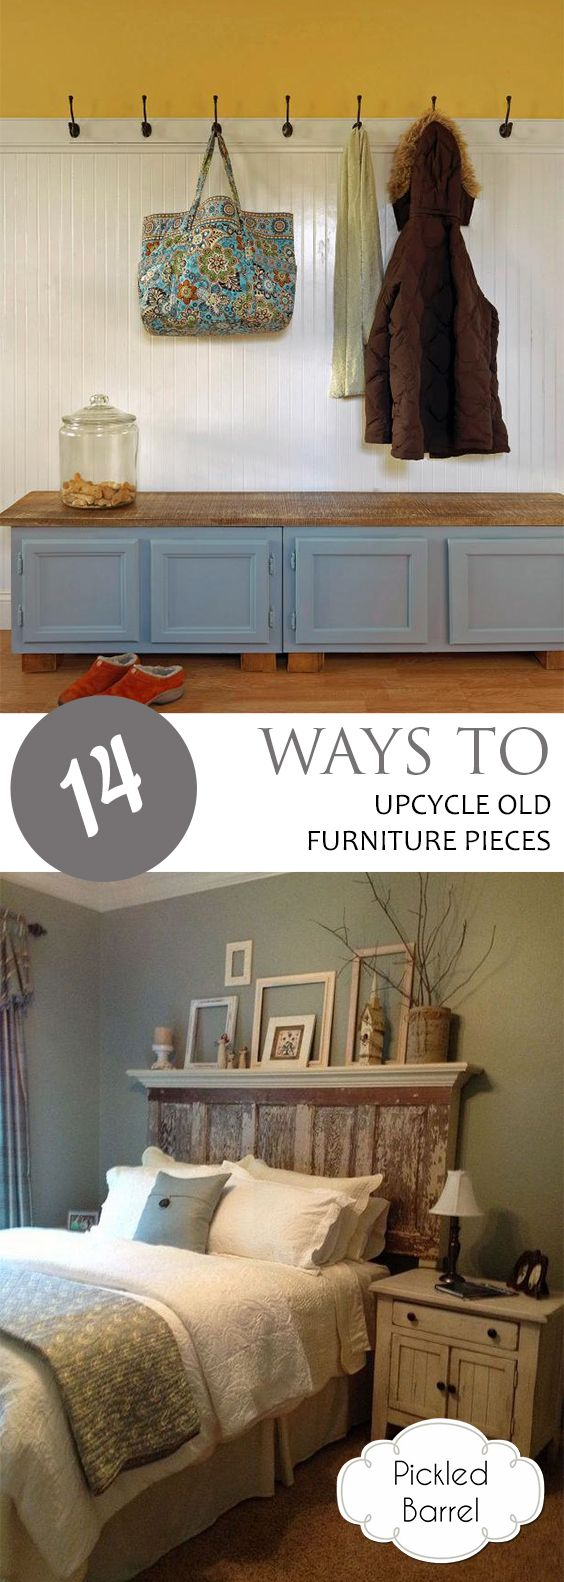 How to Reuse Old Furniture, How to Upcycle Old Furniture, Things to ...